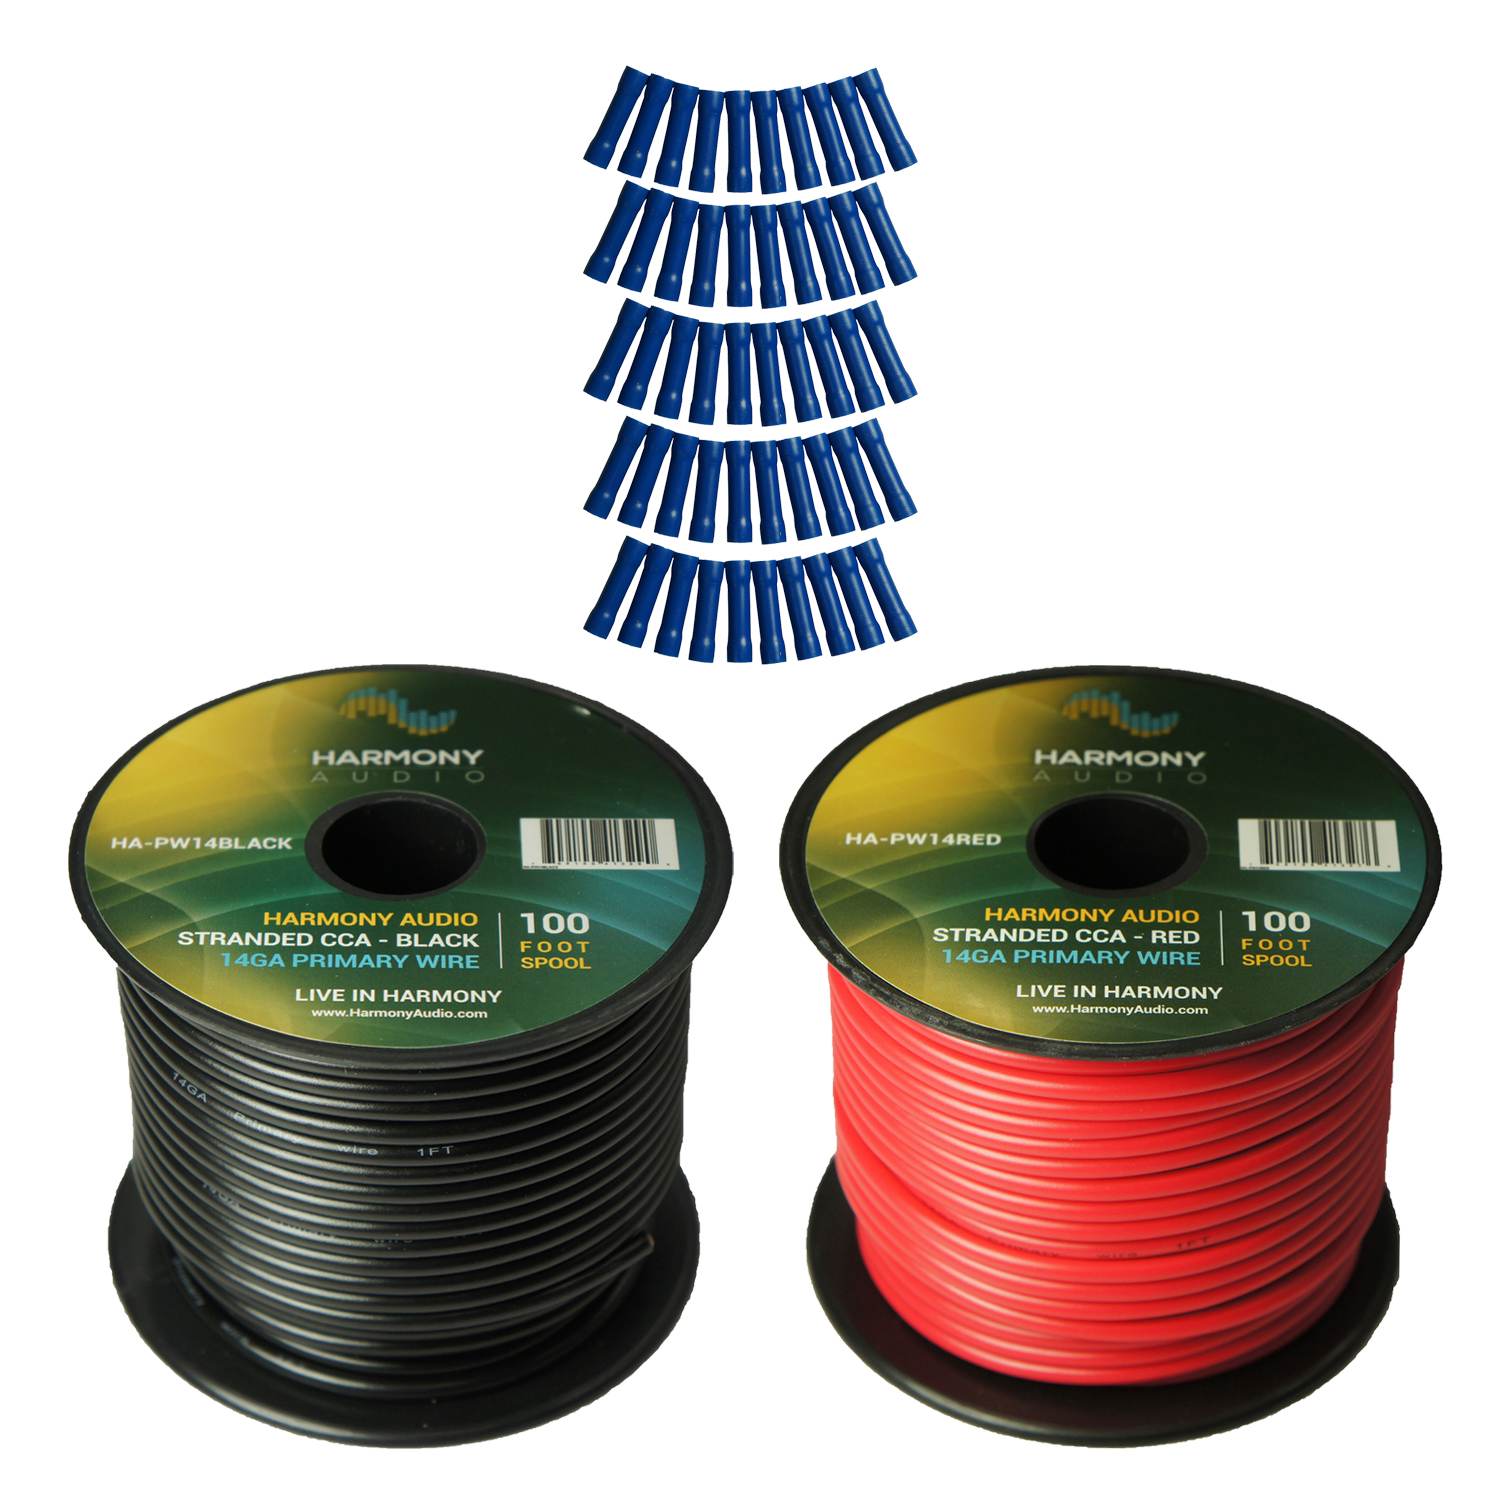 Harmony Audio Primary Single Conductor 14 Gauge Power or Ground Wire - 2 Rolls - 200 Feet - Red & Black for Car Audio / Trailer / Model Train / Remote